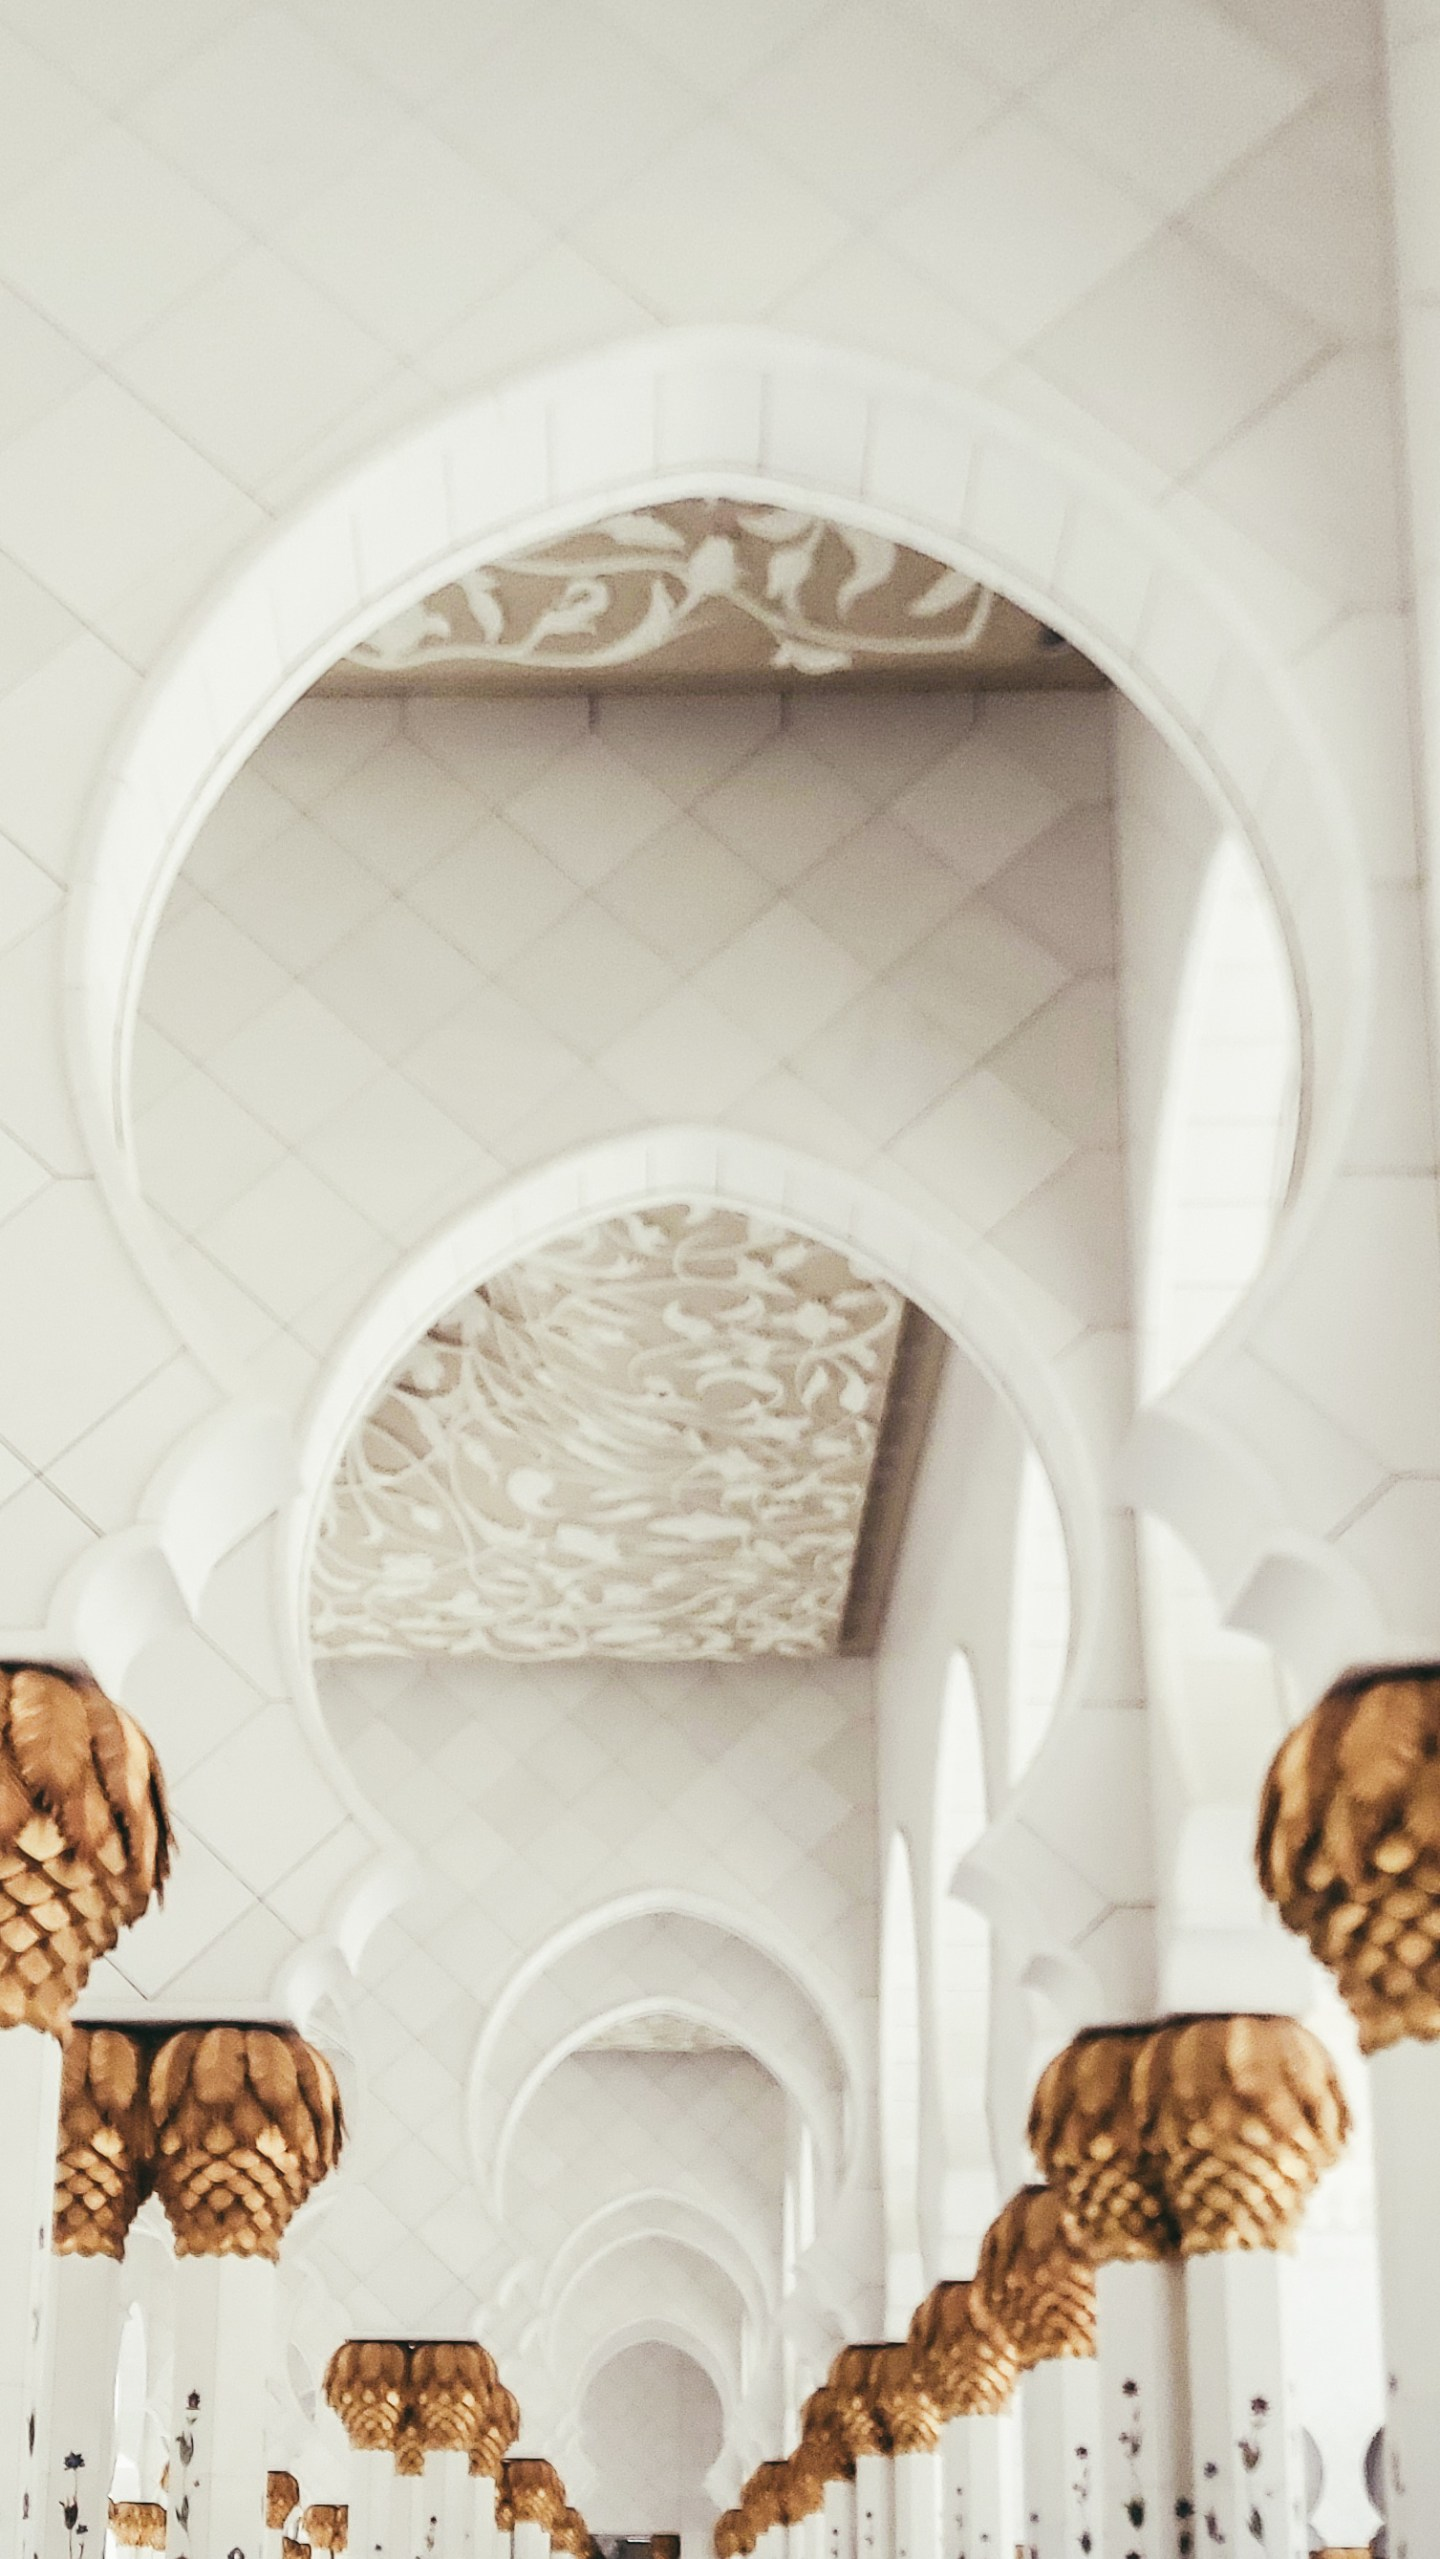 The Moorish archways of  Sheikh Zayed Grand Mosque